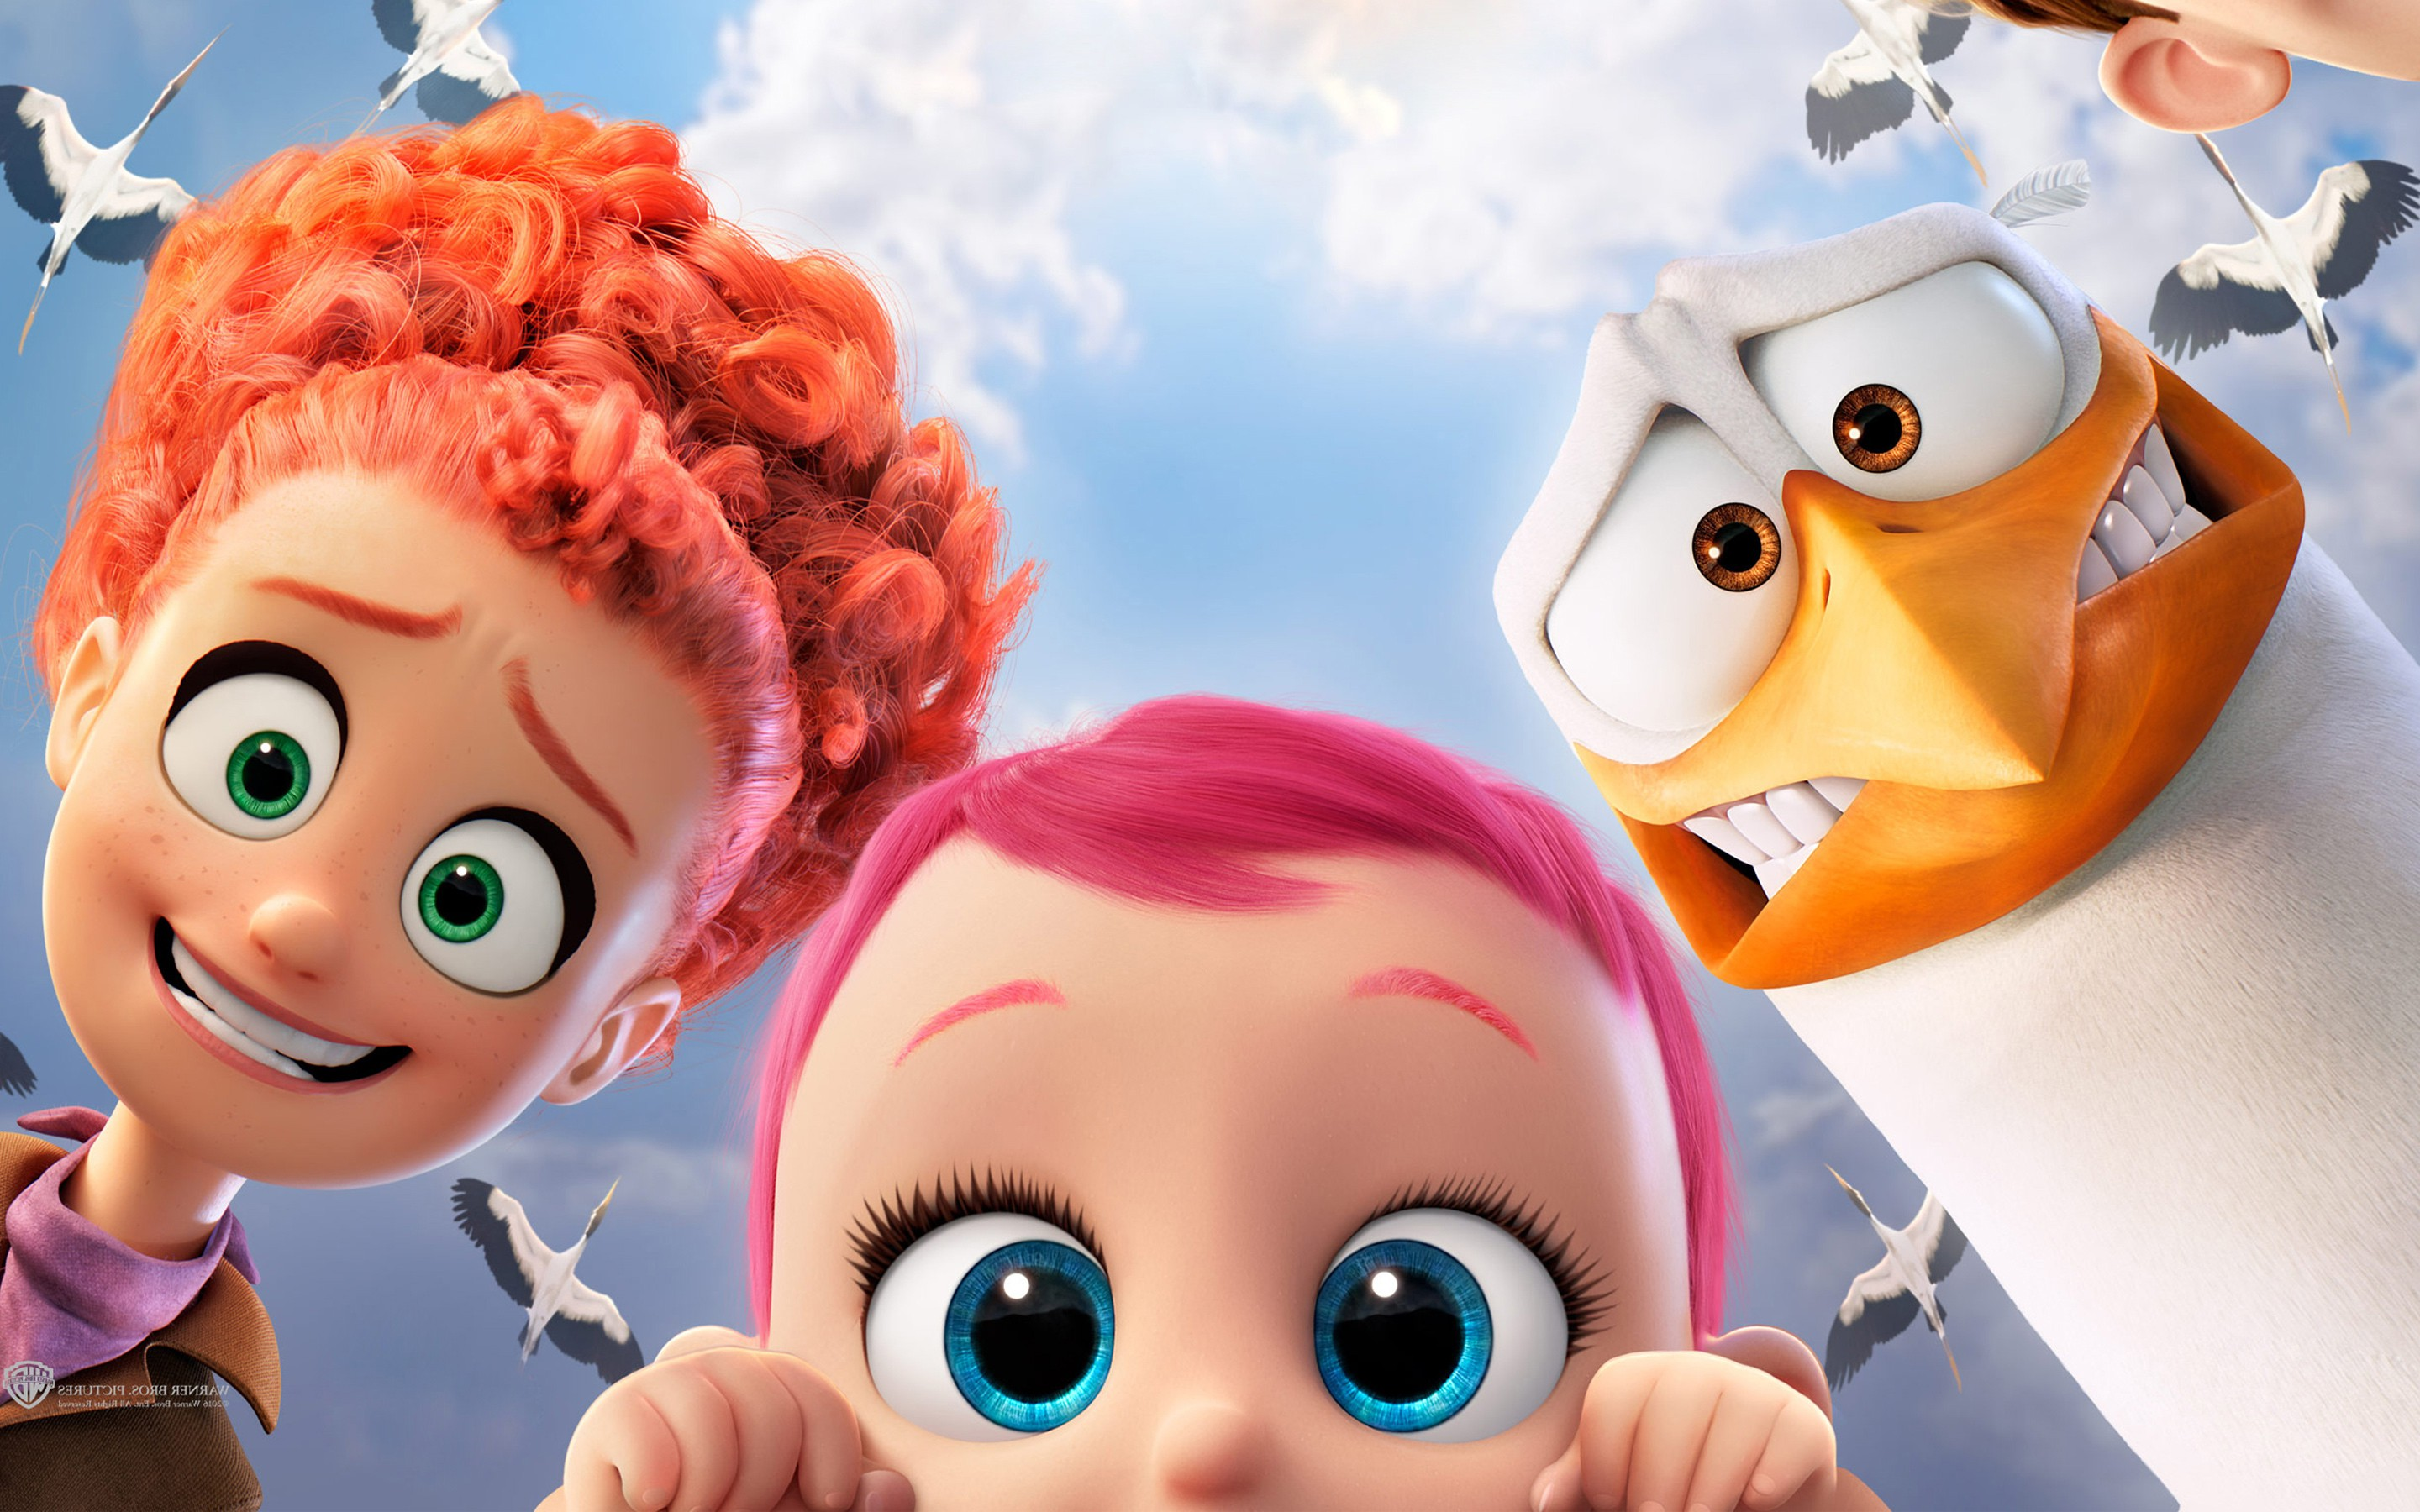 Storks - movie - still - Storkene - animation